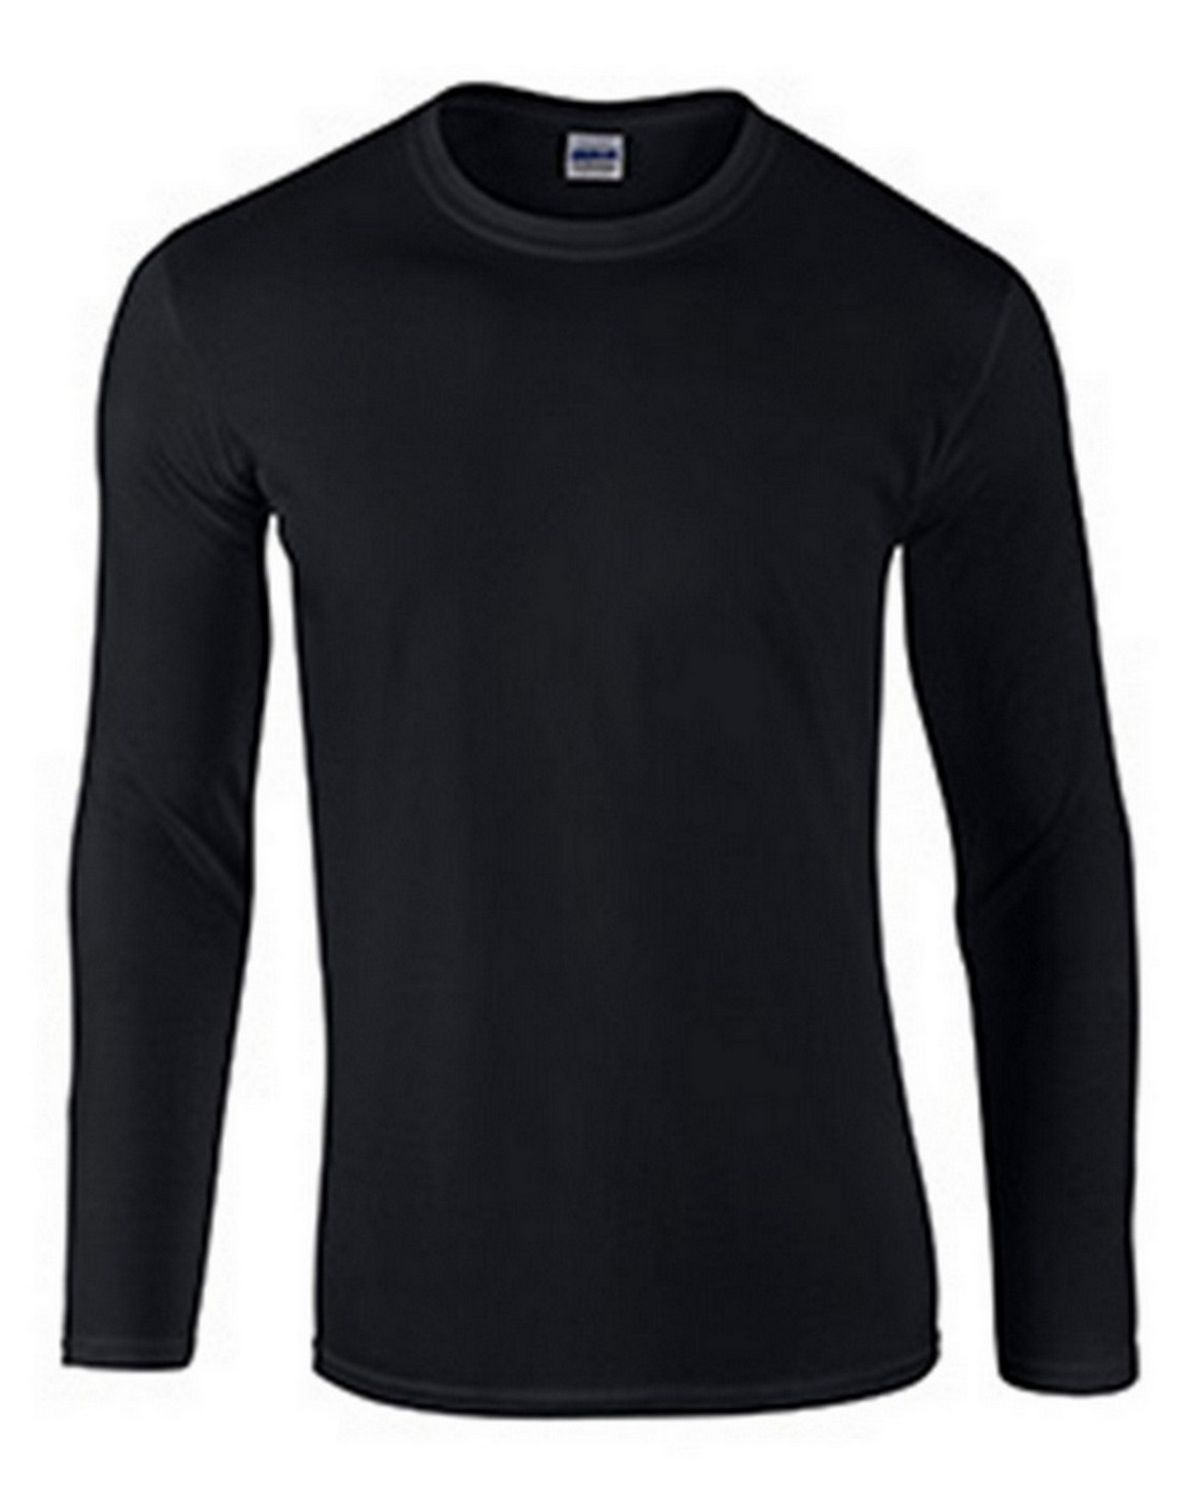 Gildan G64400 Adult Long Sleeve Tee - Black - 2X G64400